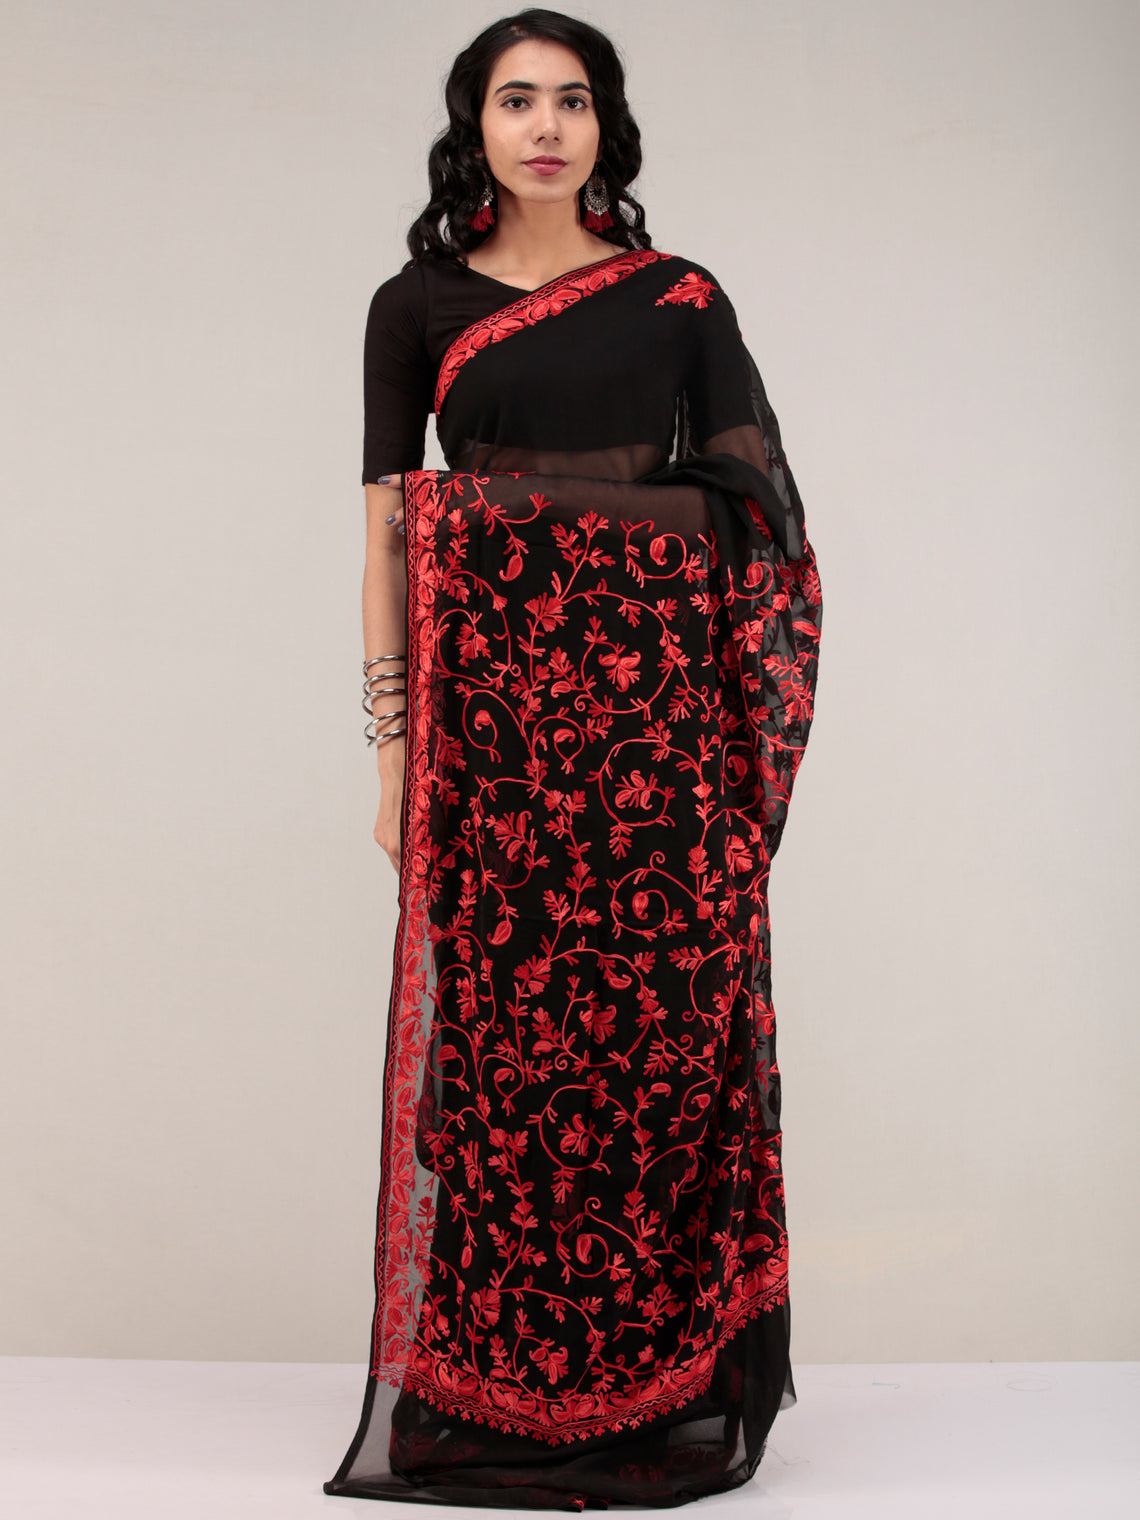 Black Aari Embroidered Georgette Saree From Kashmir - S031704633